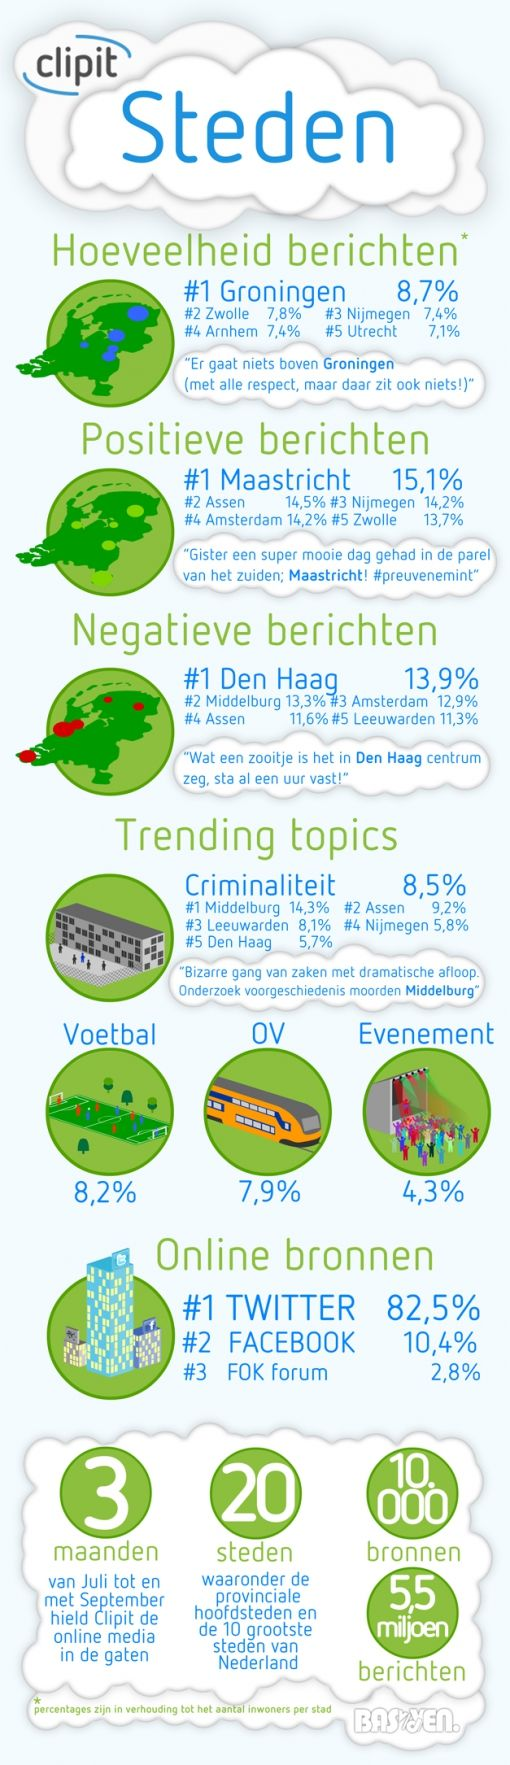 Infographic steden - Clipit